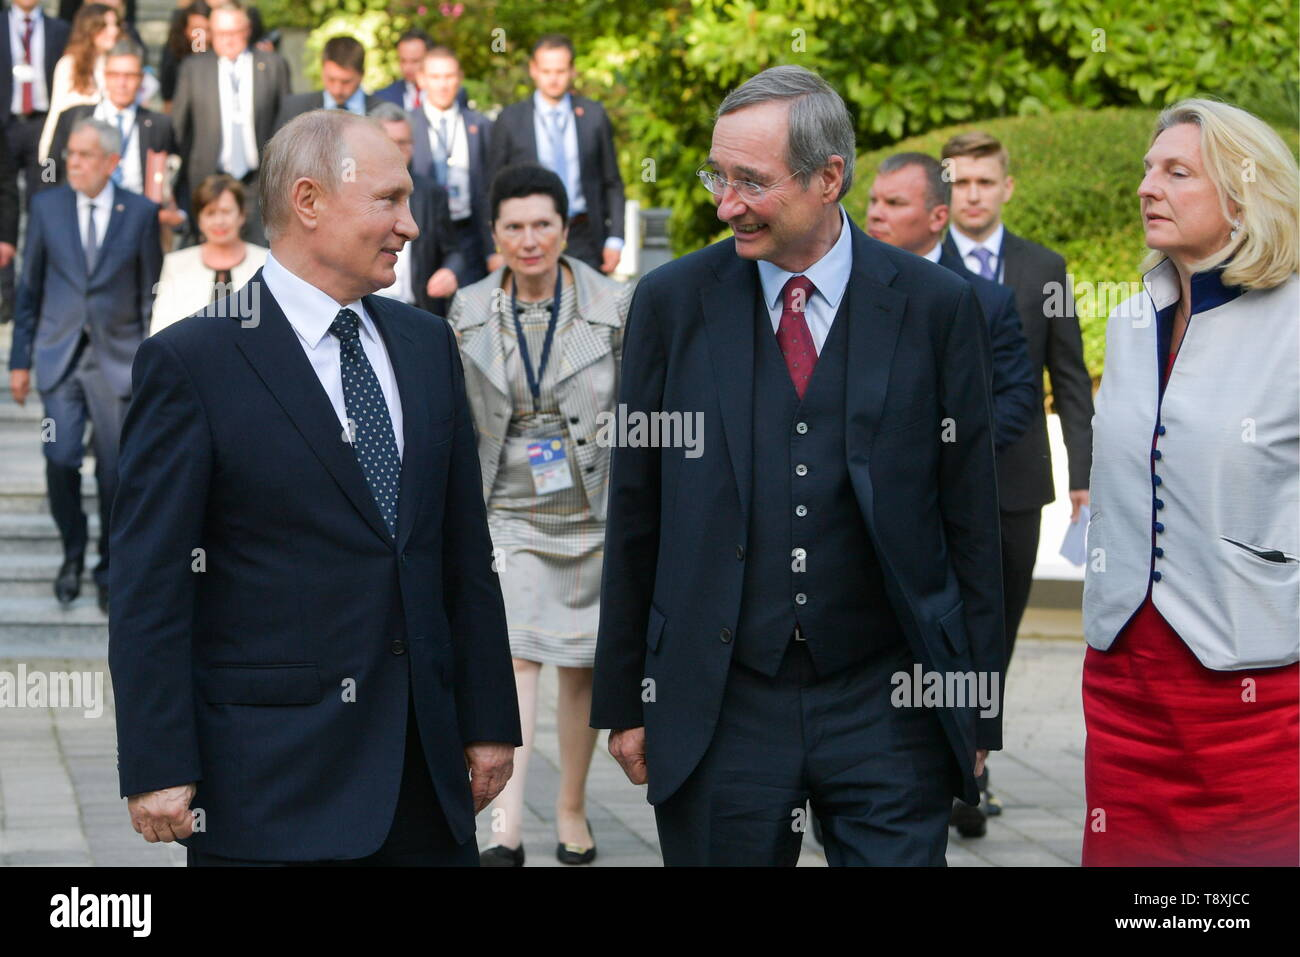 Sochi, Russia. 15th May, 2019. SOCHI, RUSSIA - MAY 15, 2019: Russia's President Vladimir Putin, Christoph Leitl, President of the Association of European Chambers of Commerce and Industry (Eurochambres), and Austria's Foreign Minister Karin Kneissl (L-R front) after the inaugural meeting of the Sochi Dialogue Forum. Alexei Druzhinin/Russian Presidential Press and Information Office/TASS Credit: ITAR-TASS News Agency/Alamy Live News - Stock Image